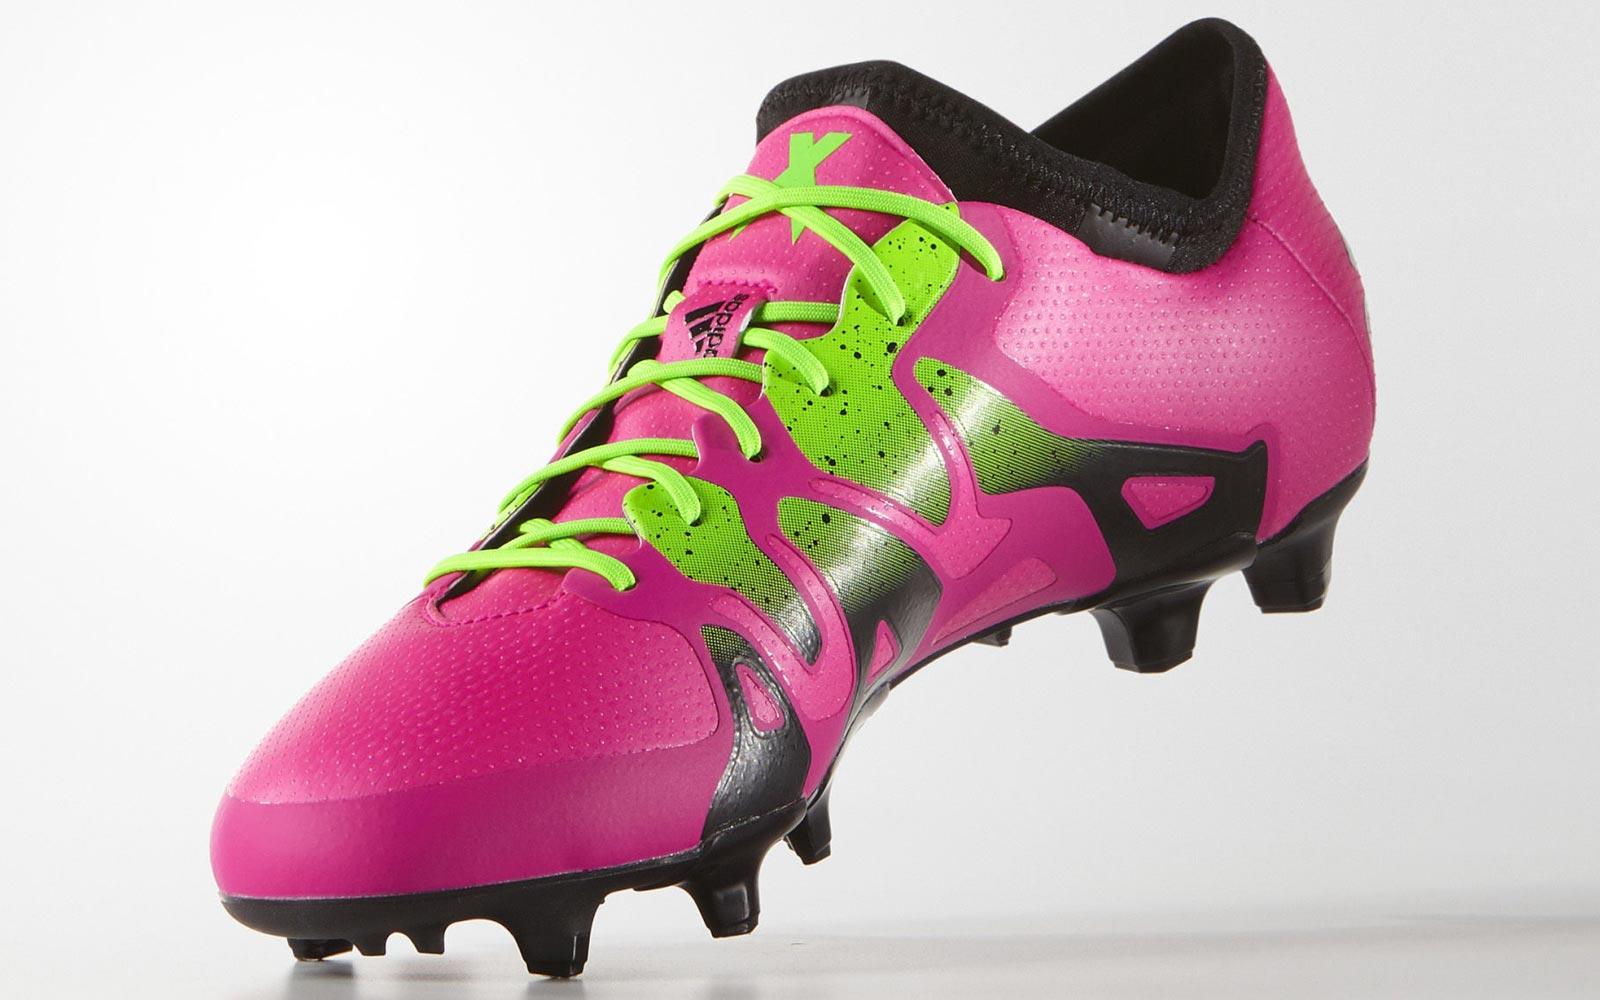 Shock Pink Adidas X 2016 Boots Released - Sports kicks 908934bf097c4